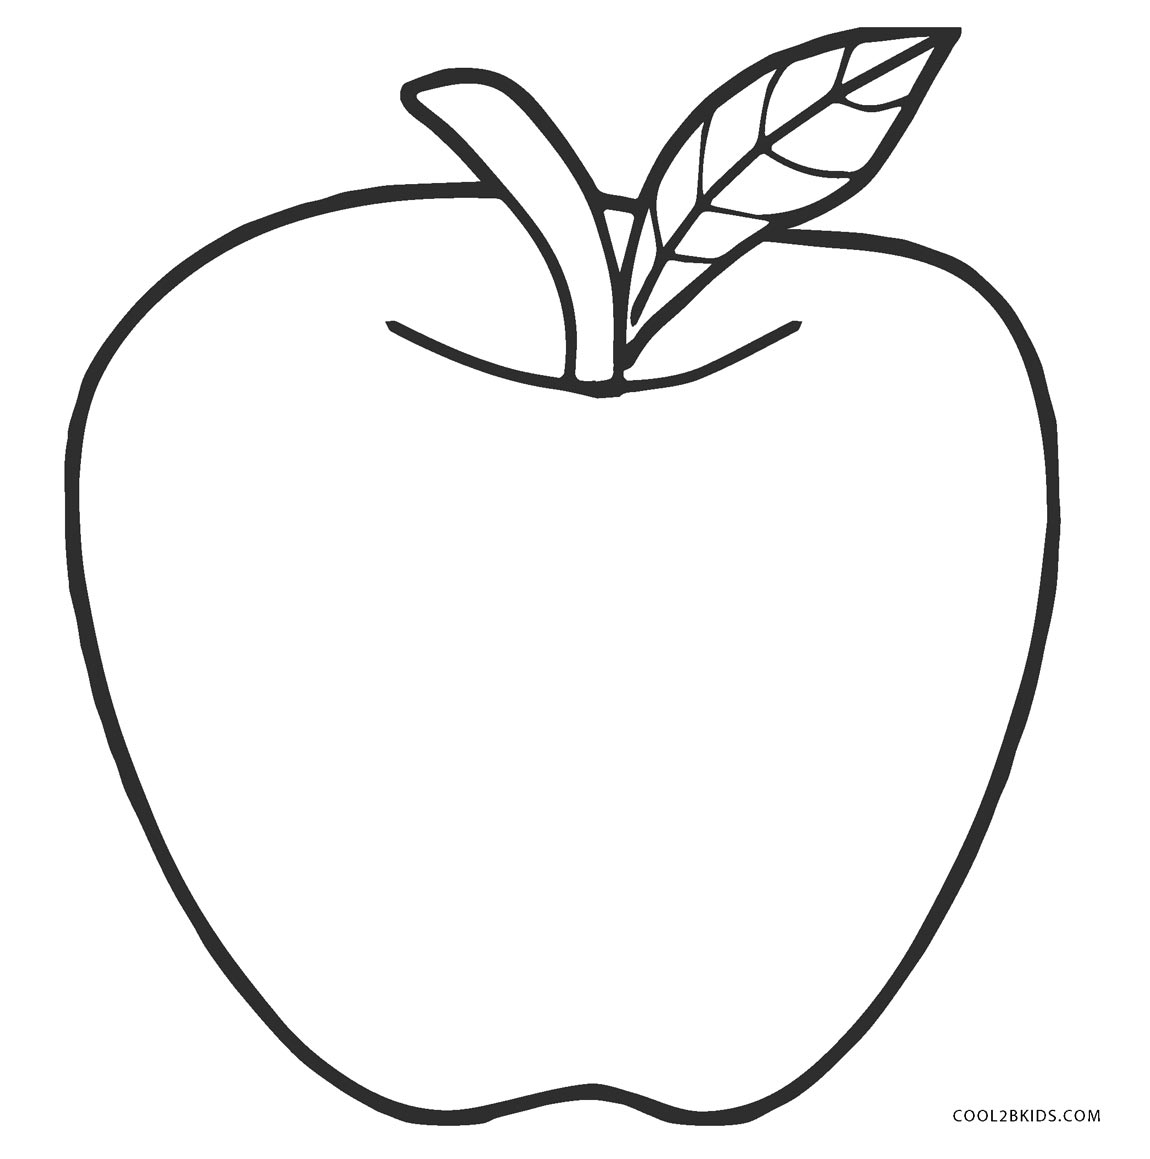 coloring image of an apple apple coloring pages to print coloring image an of apple